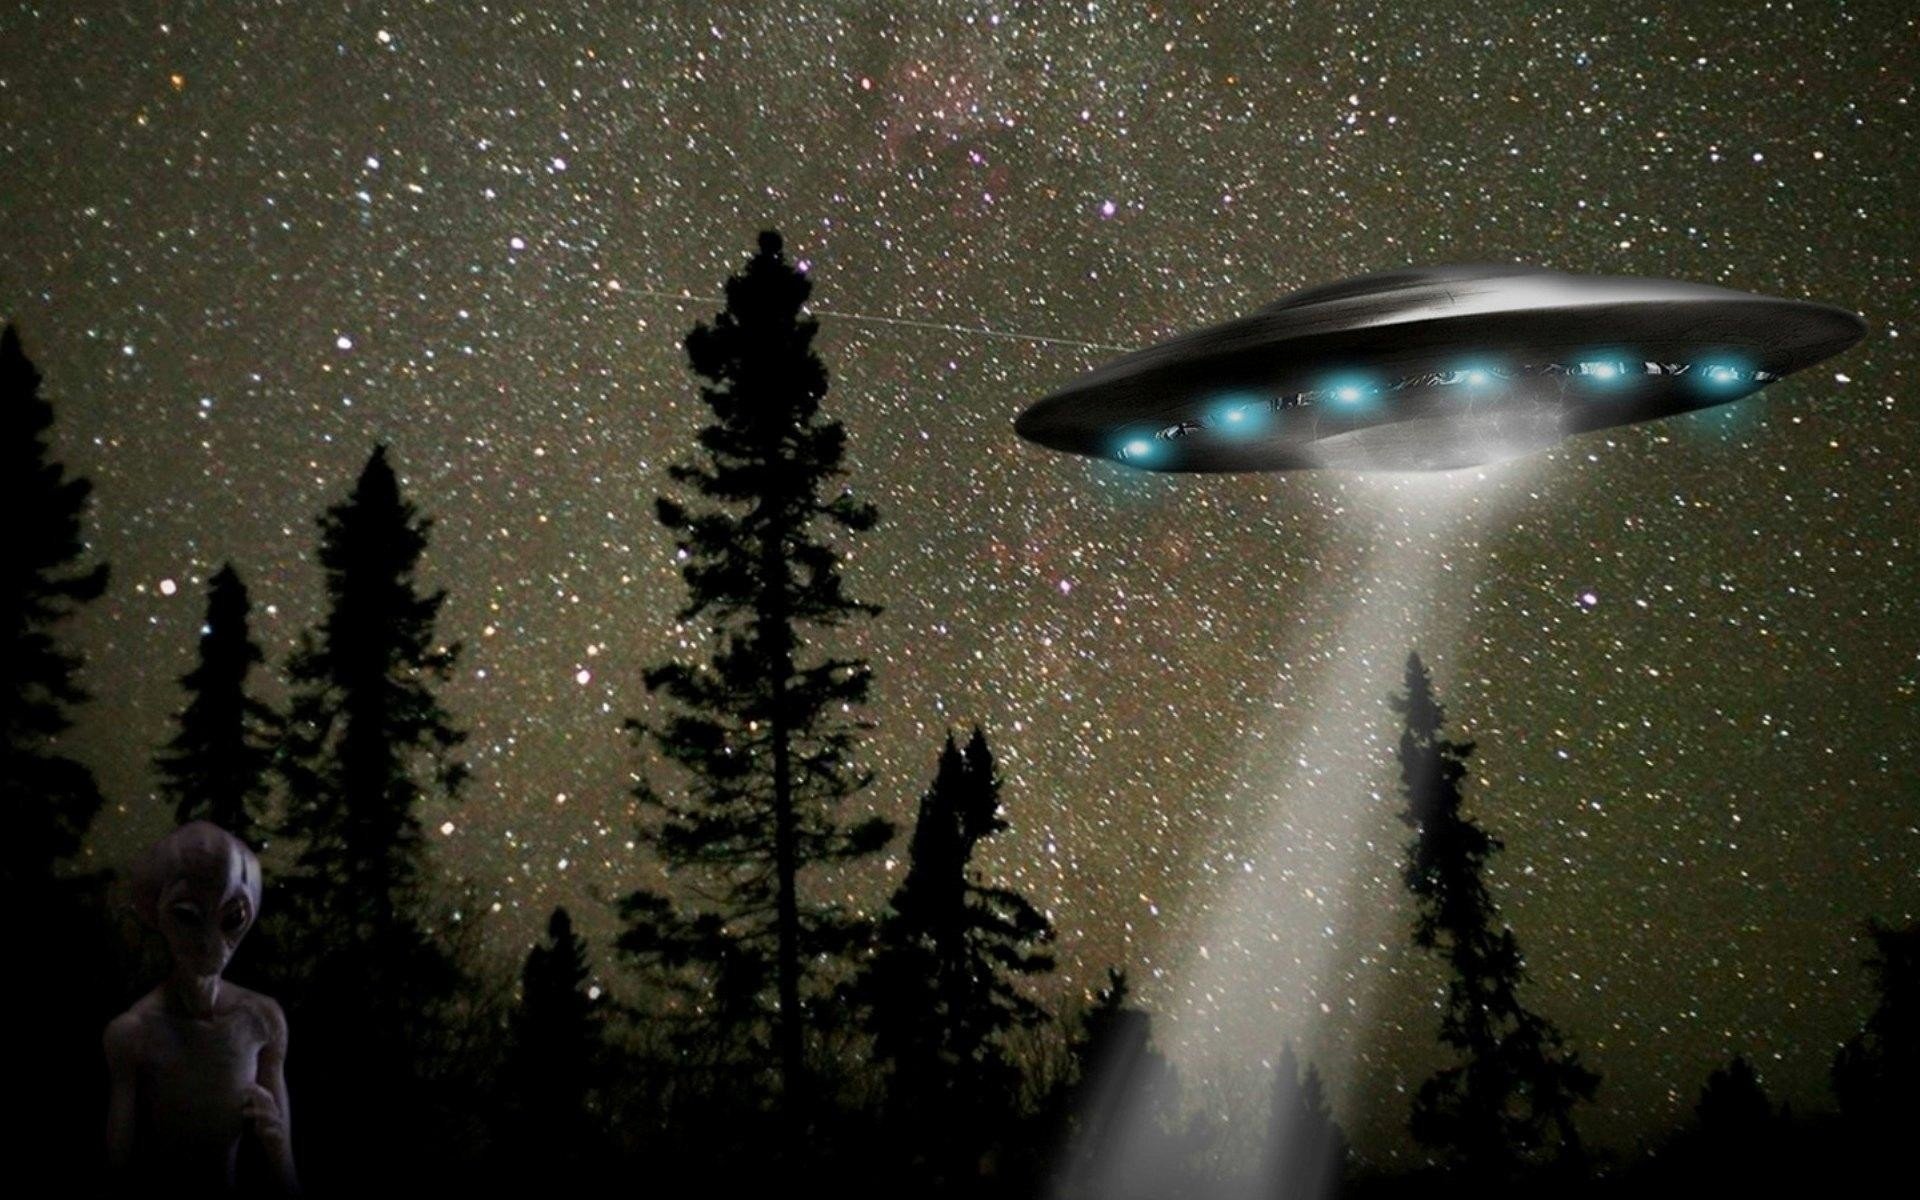 1920x1200 free ufo wallpapers desktop Wallpapers ☆ Free Gallery of Winter Alien  Spaceship Computer Desktop Wallpapers: